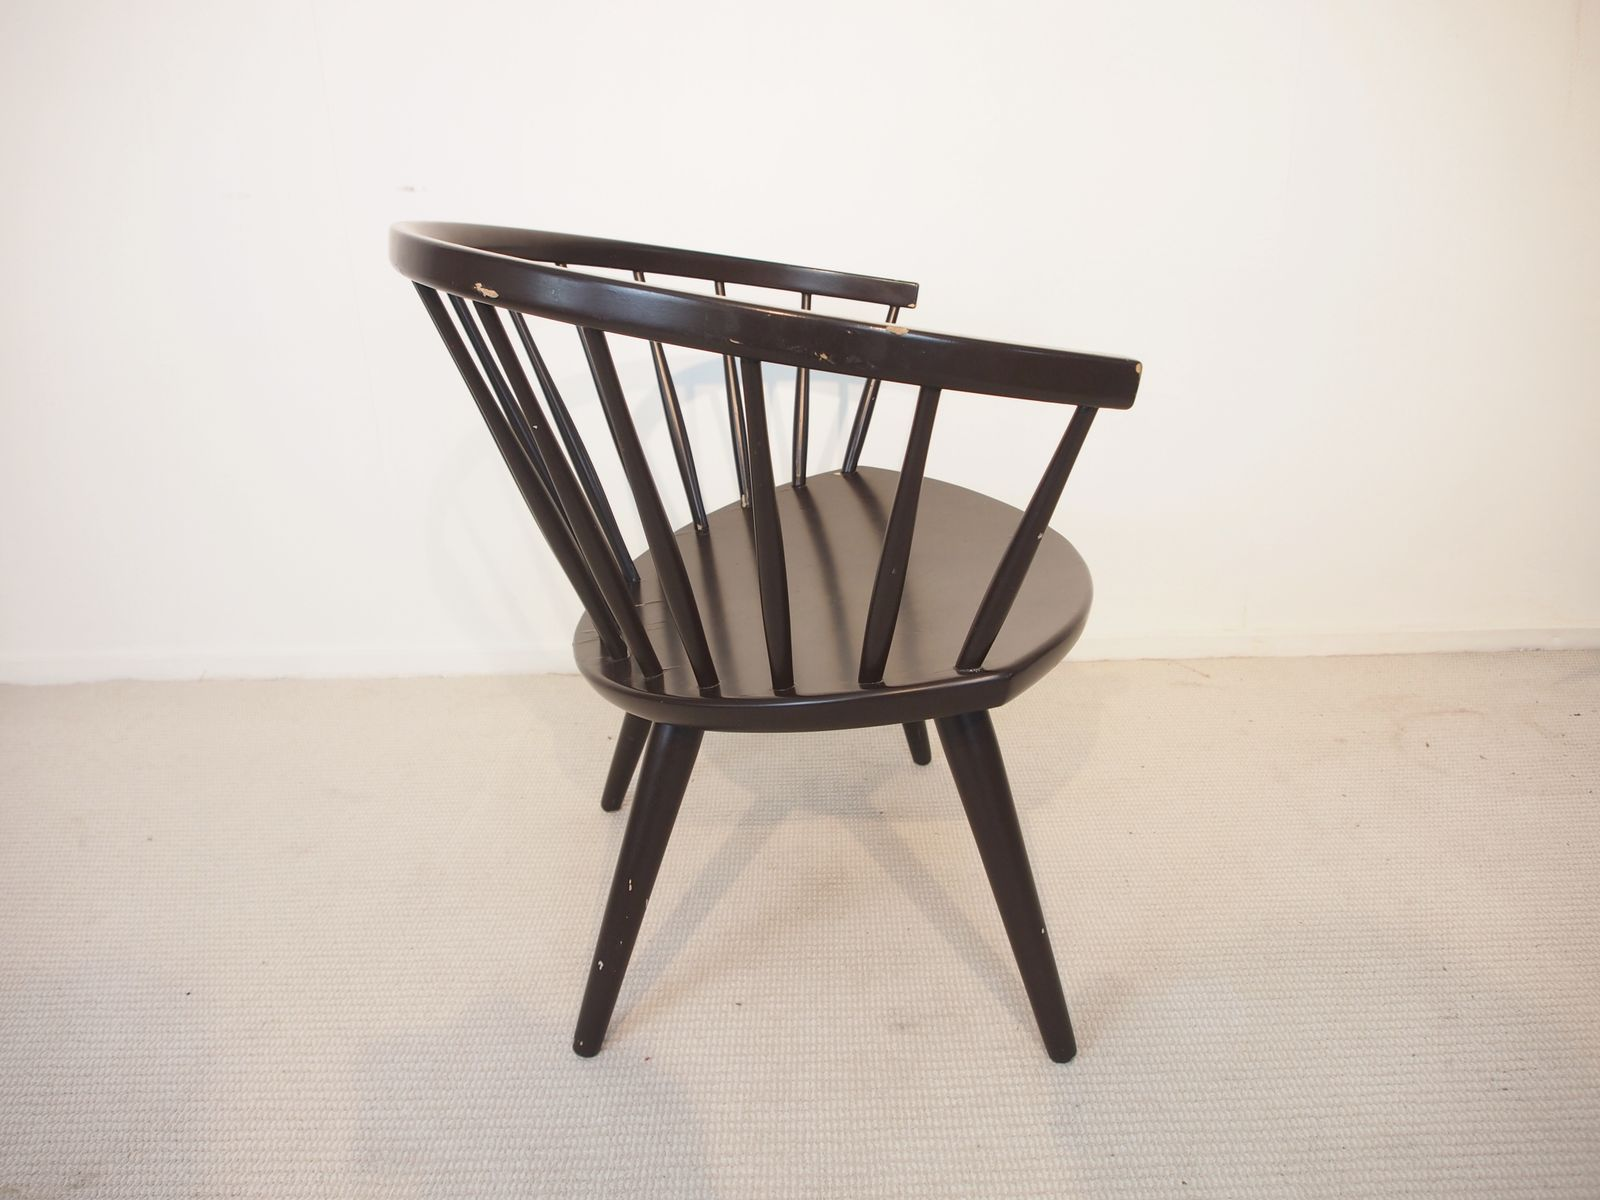 Arka Chair by Yngve Ekstrom for Stolab, 1970s for sale at Pamono